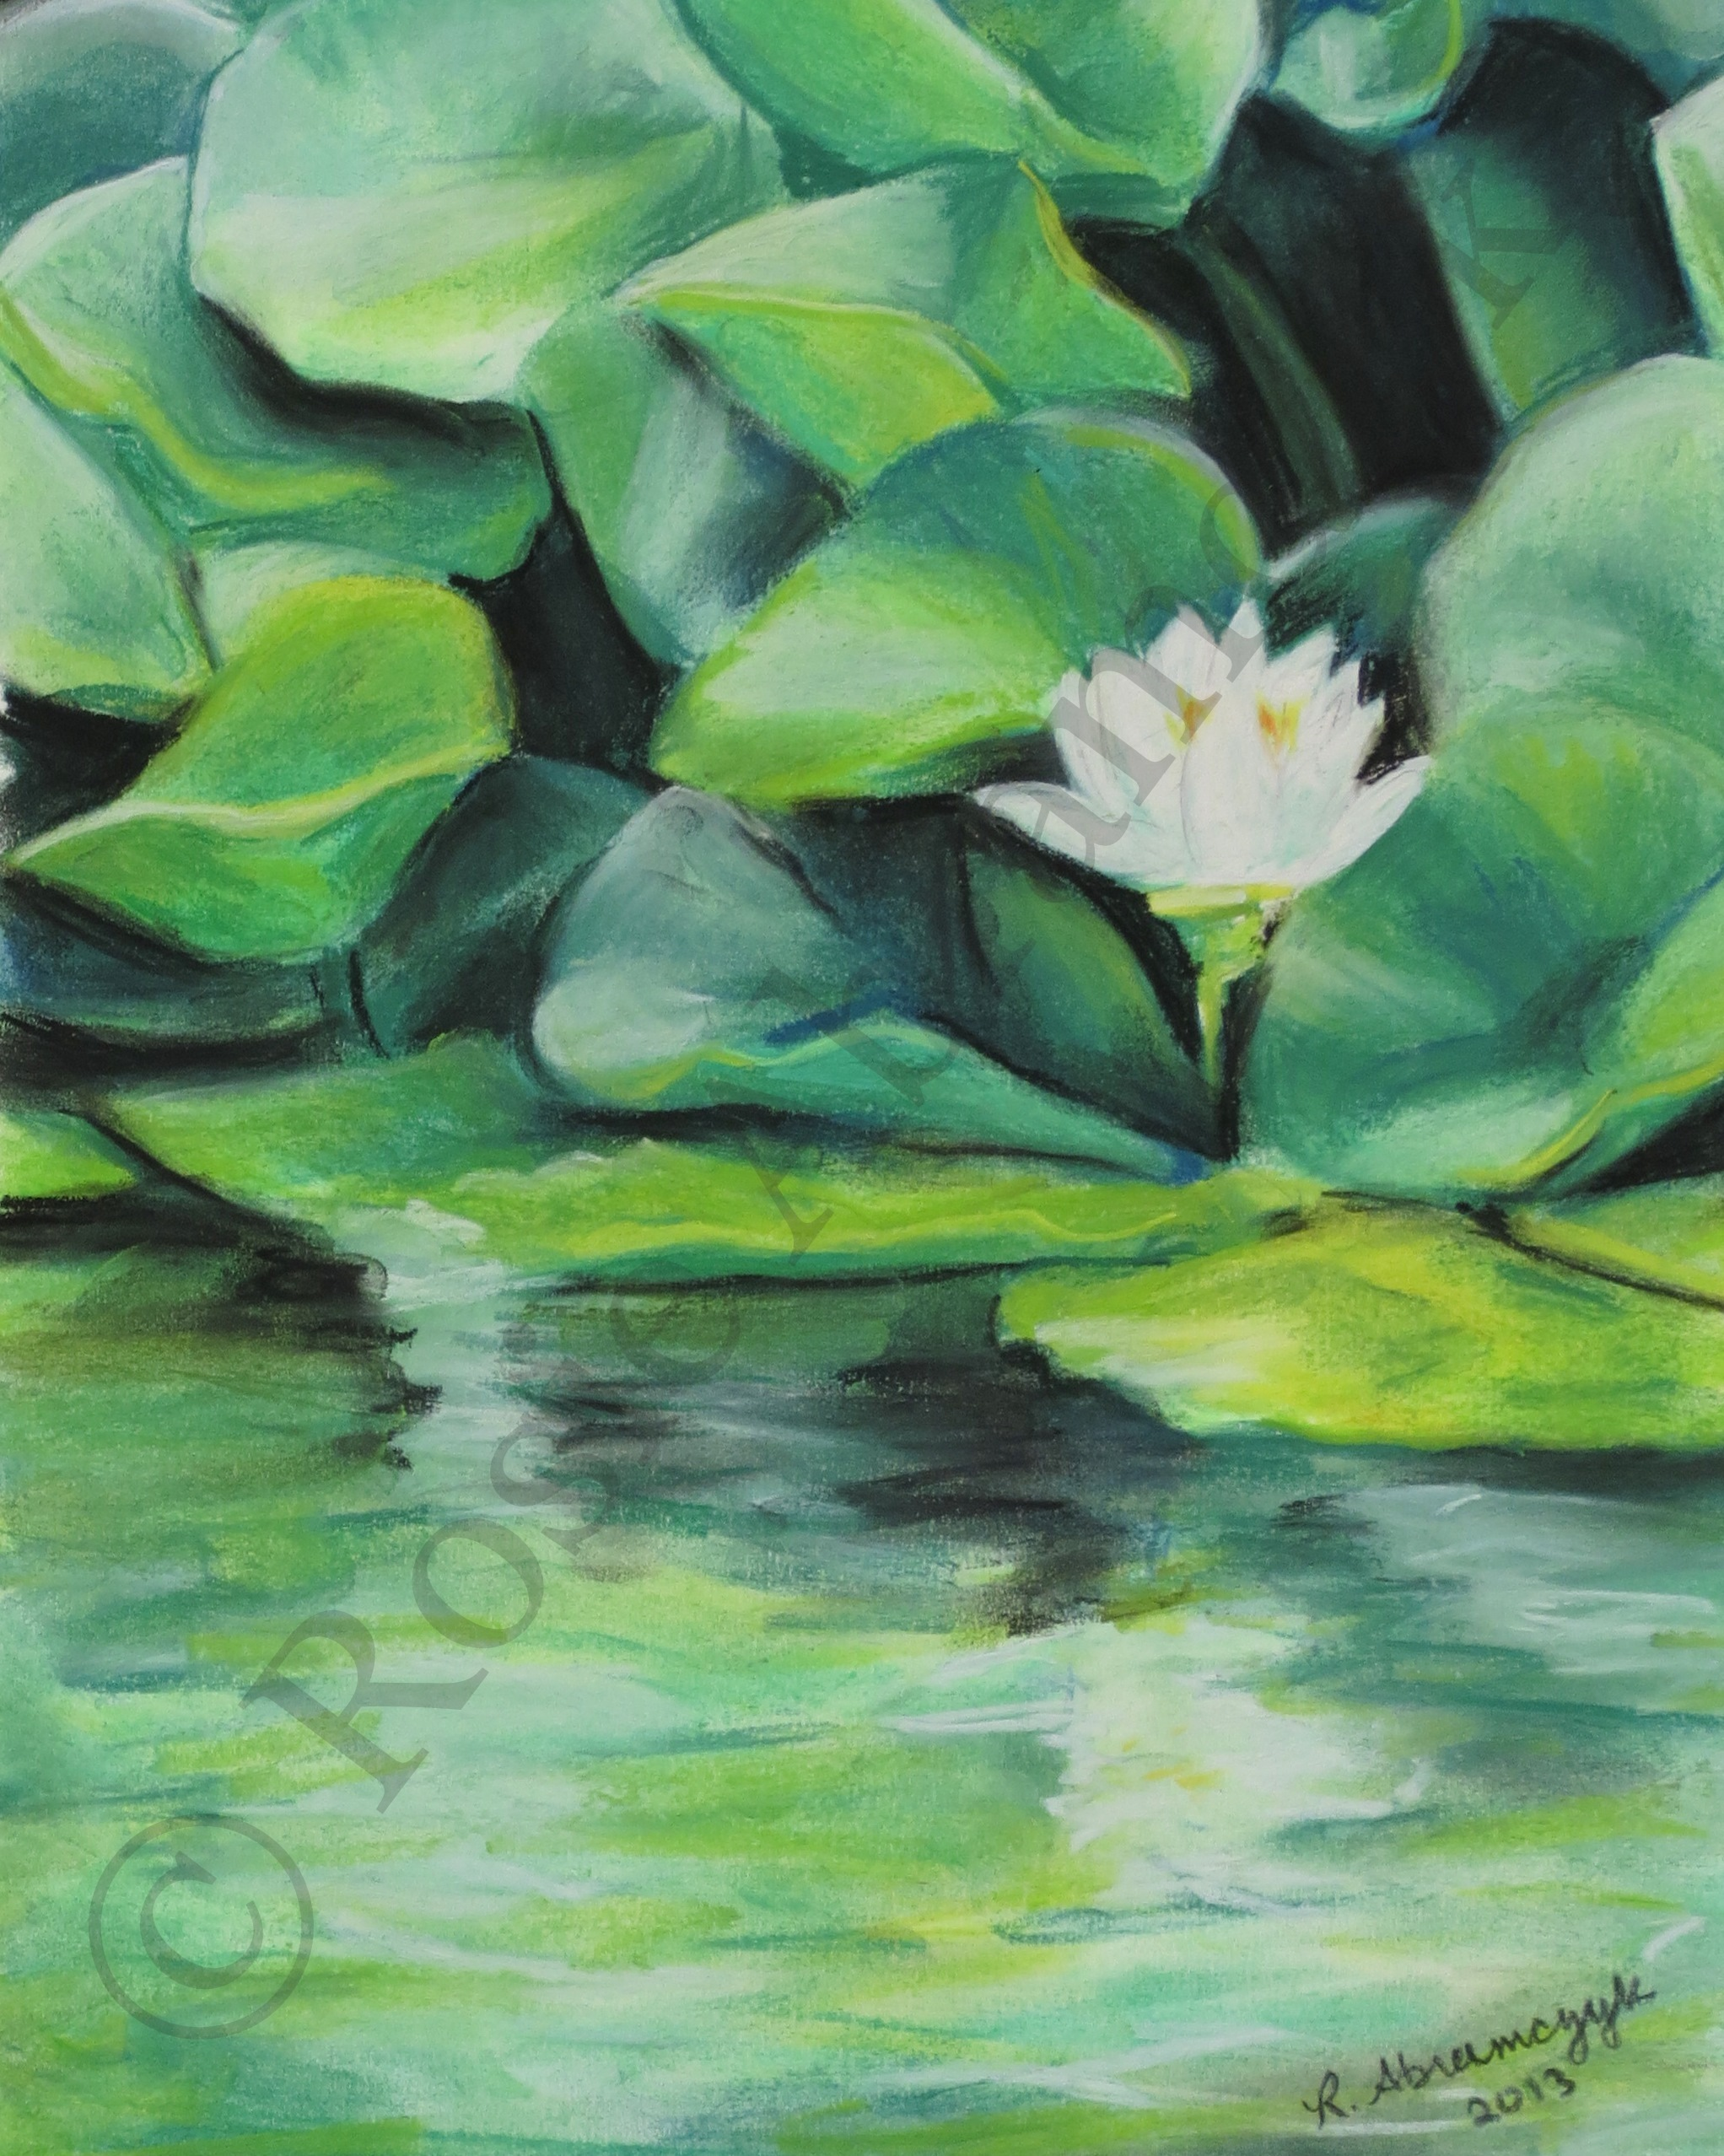 White Lily at Francis Park Pond, by Rosie Abramczyk, Chalk Pastel, 2013